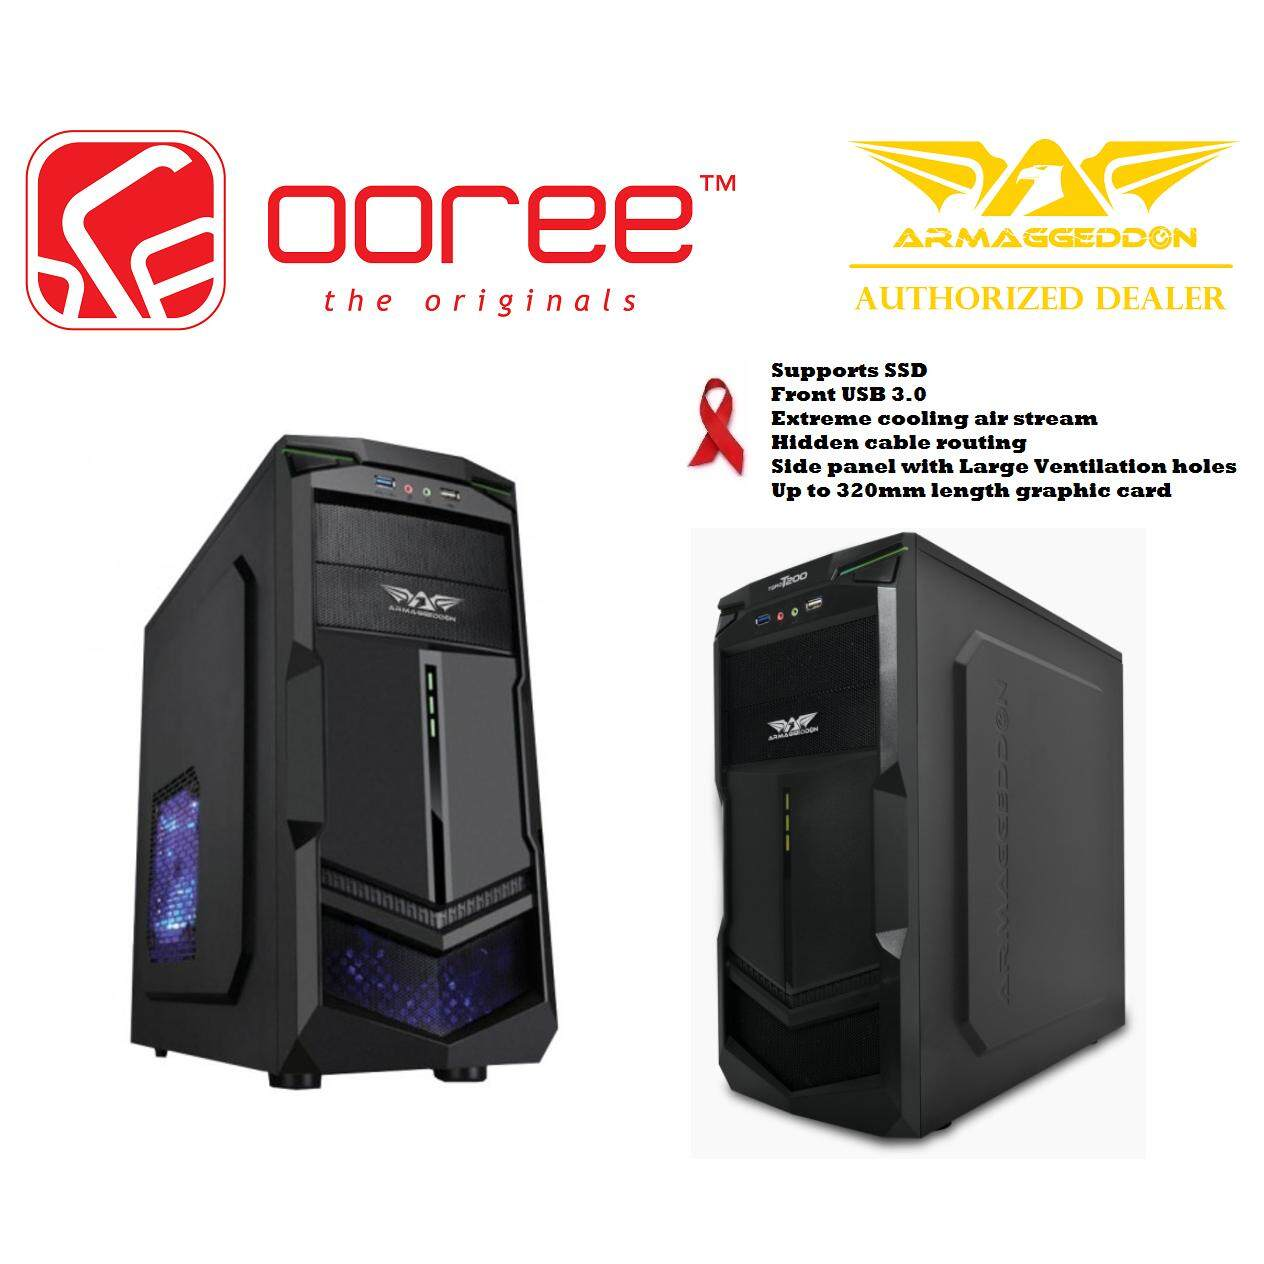 GENUINE ARMAGGEDDON ATX TORO T200 GAMING CHASIS WITH EXTREME COOLING AIR STREAM Malaysia